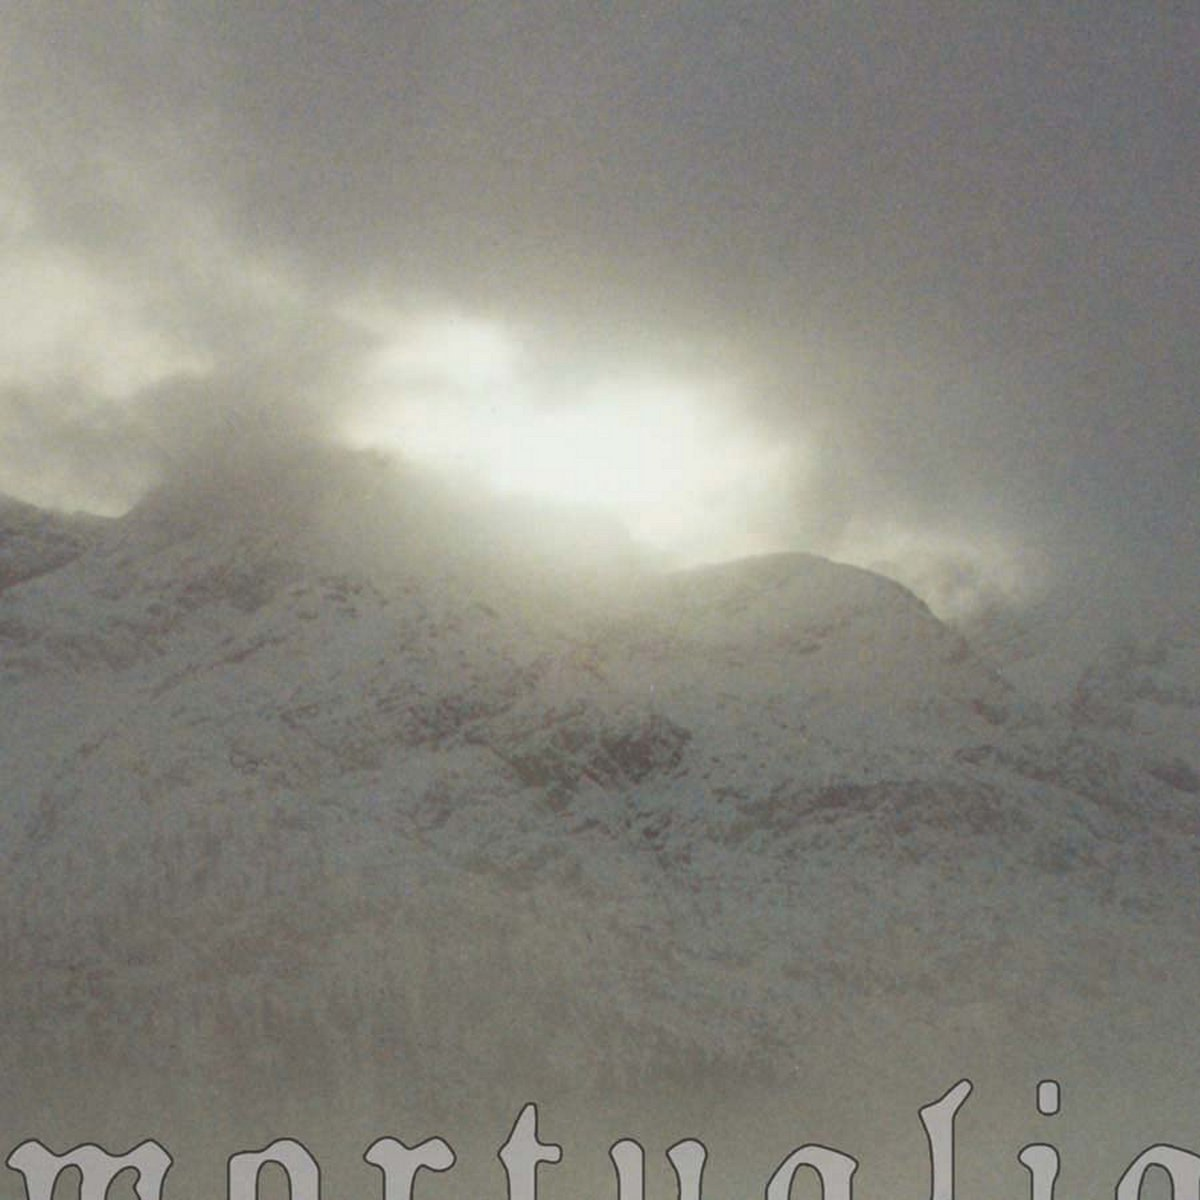 Review for Mortualia - Mortualia